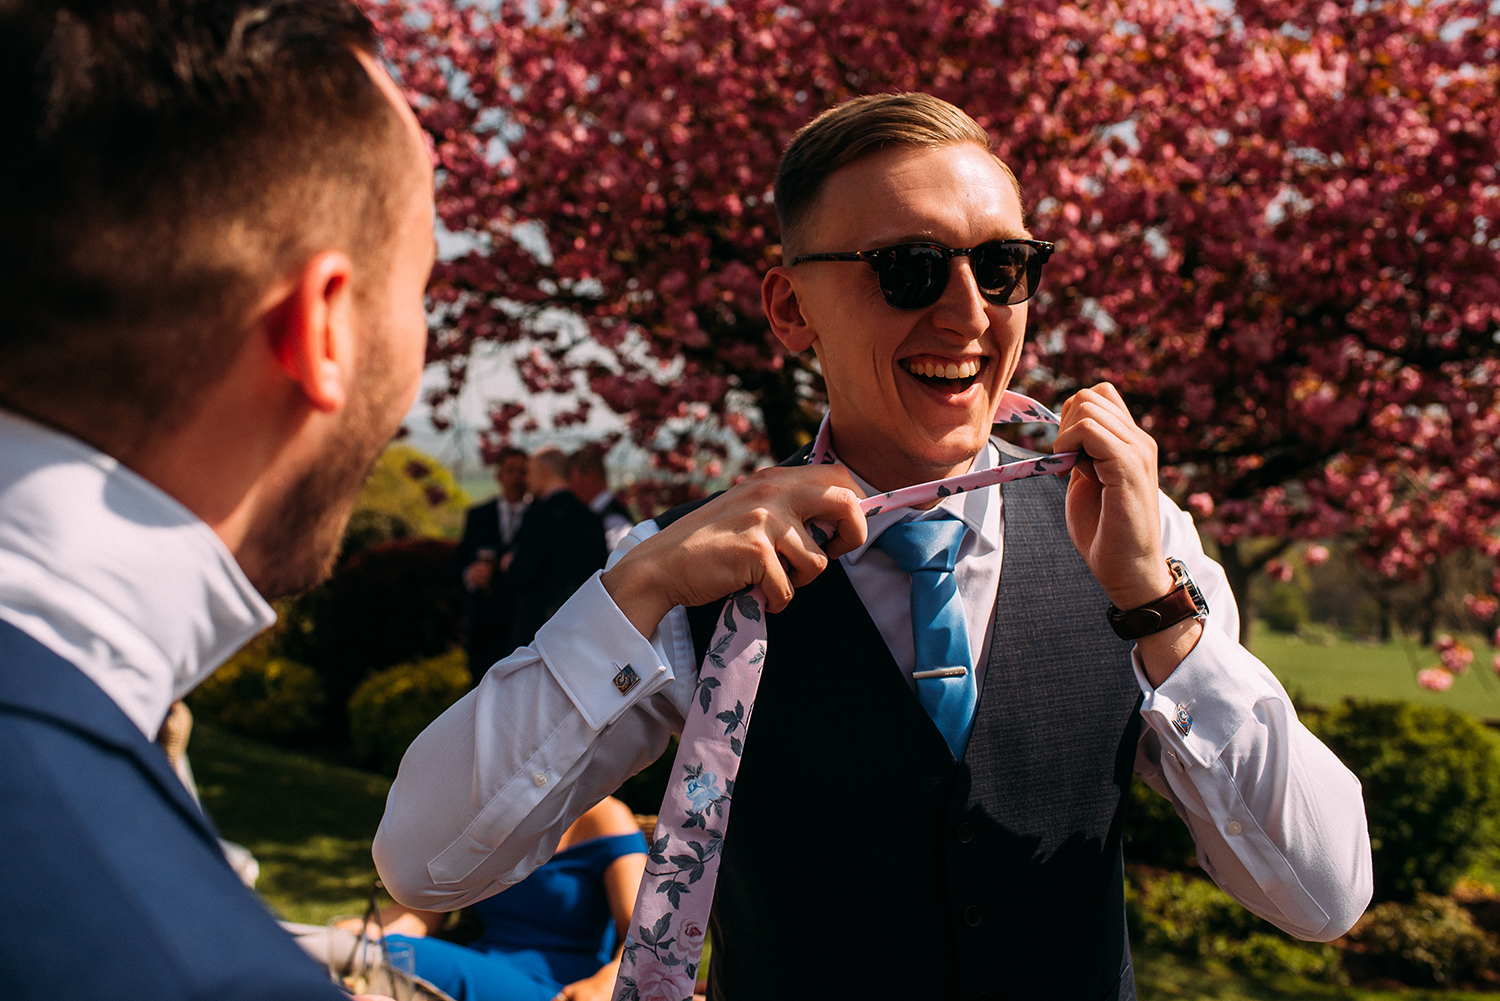 wedding guest laughing and pulling his tie over his head